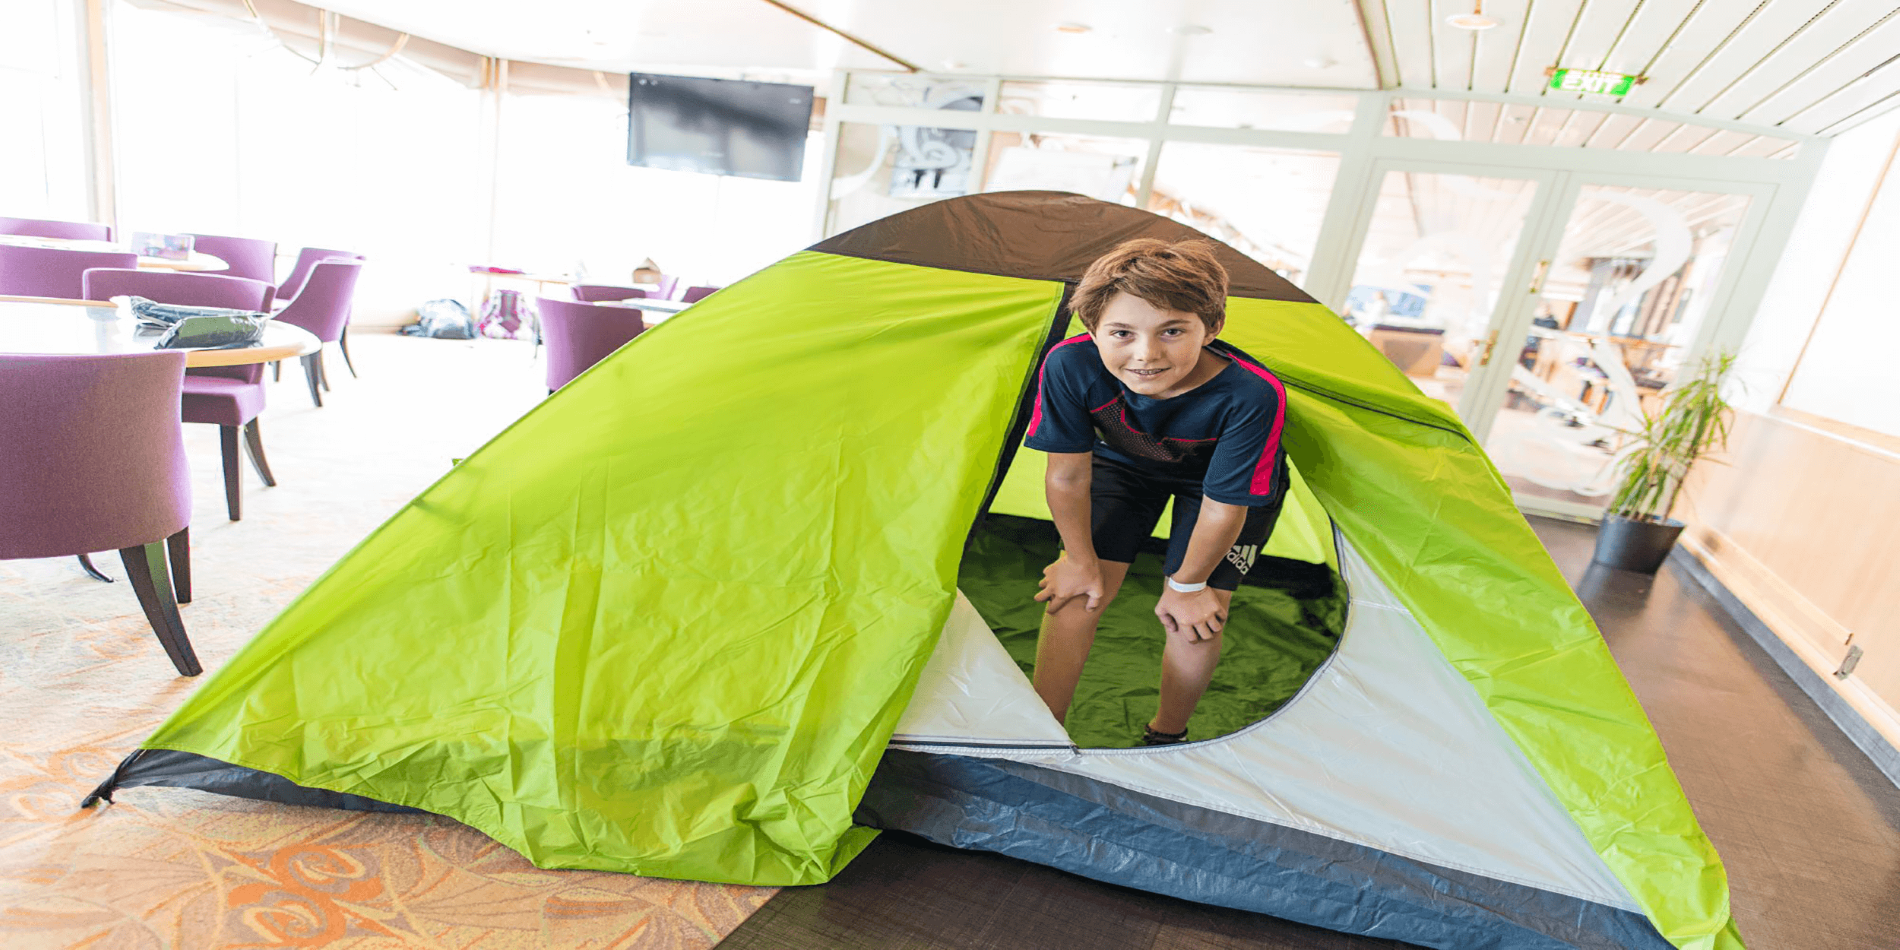 2500x1250_Young Explorers_boy in tent_Ørjan Bertelsen.png